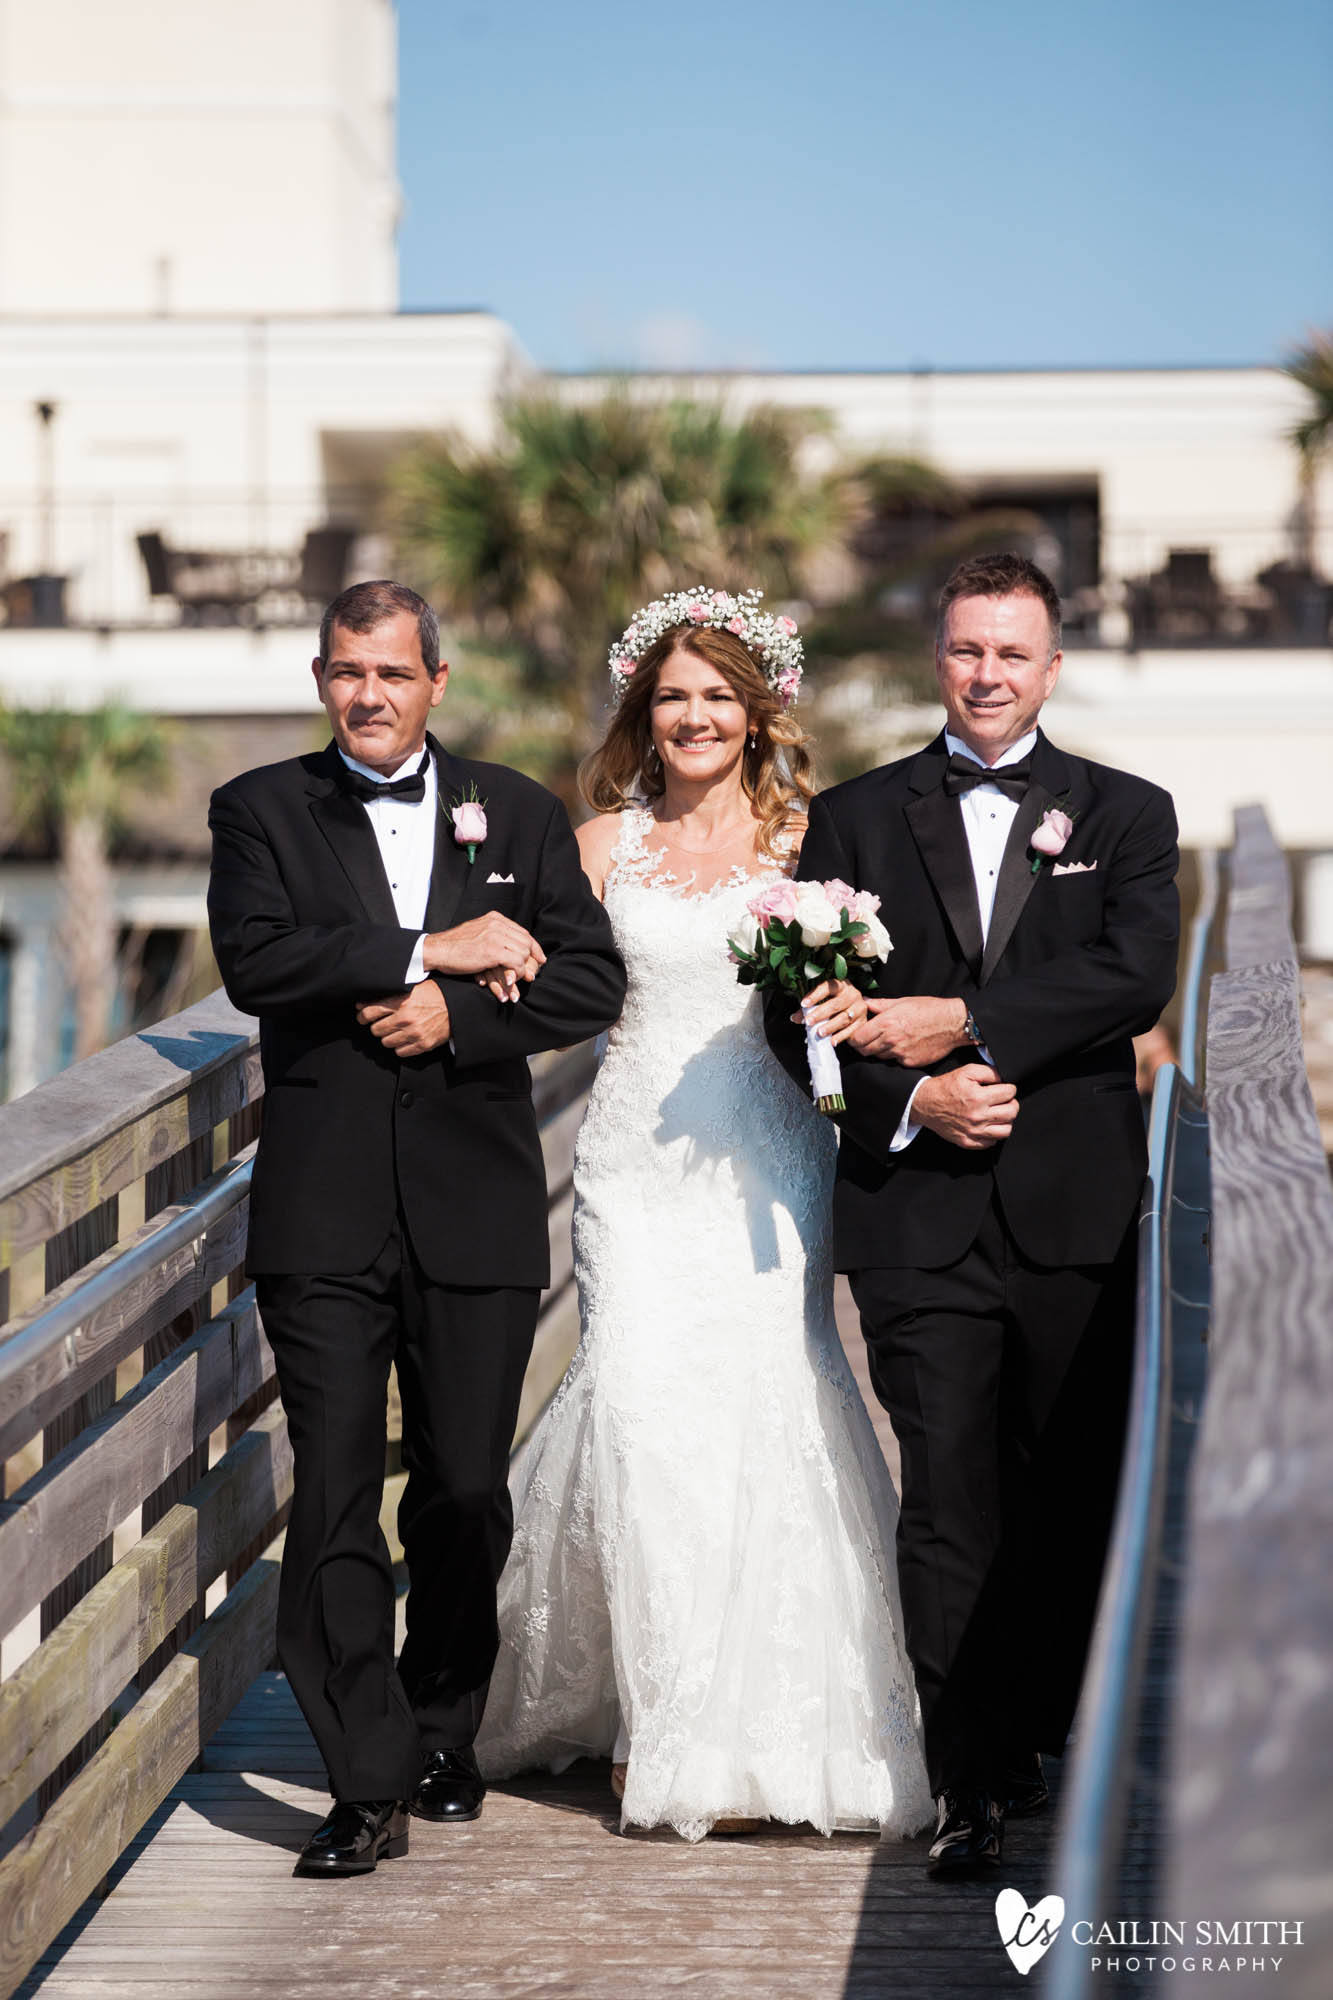 Kalina_Andy_Jekyll_Island_Westin_Hotel_Wedding_Photography_0030.jpg